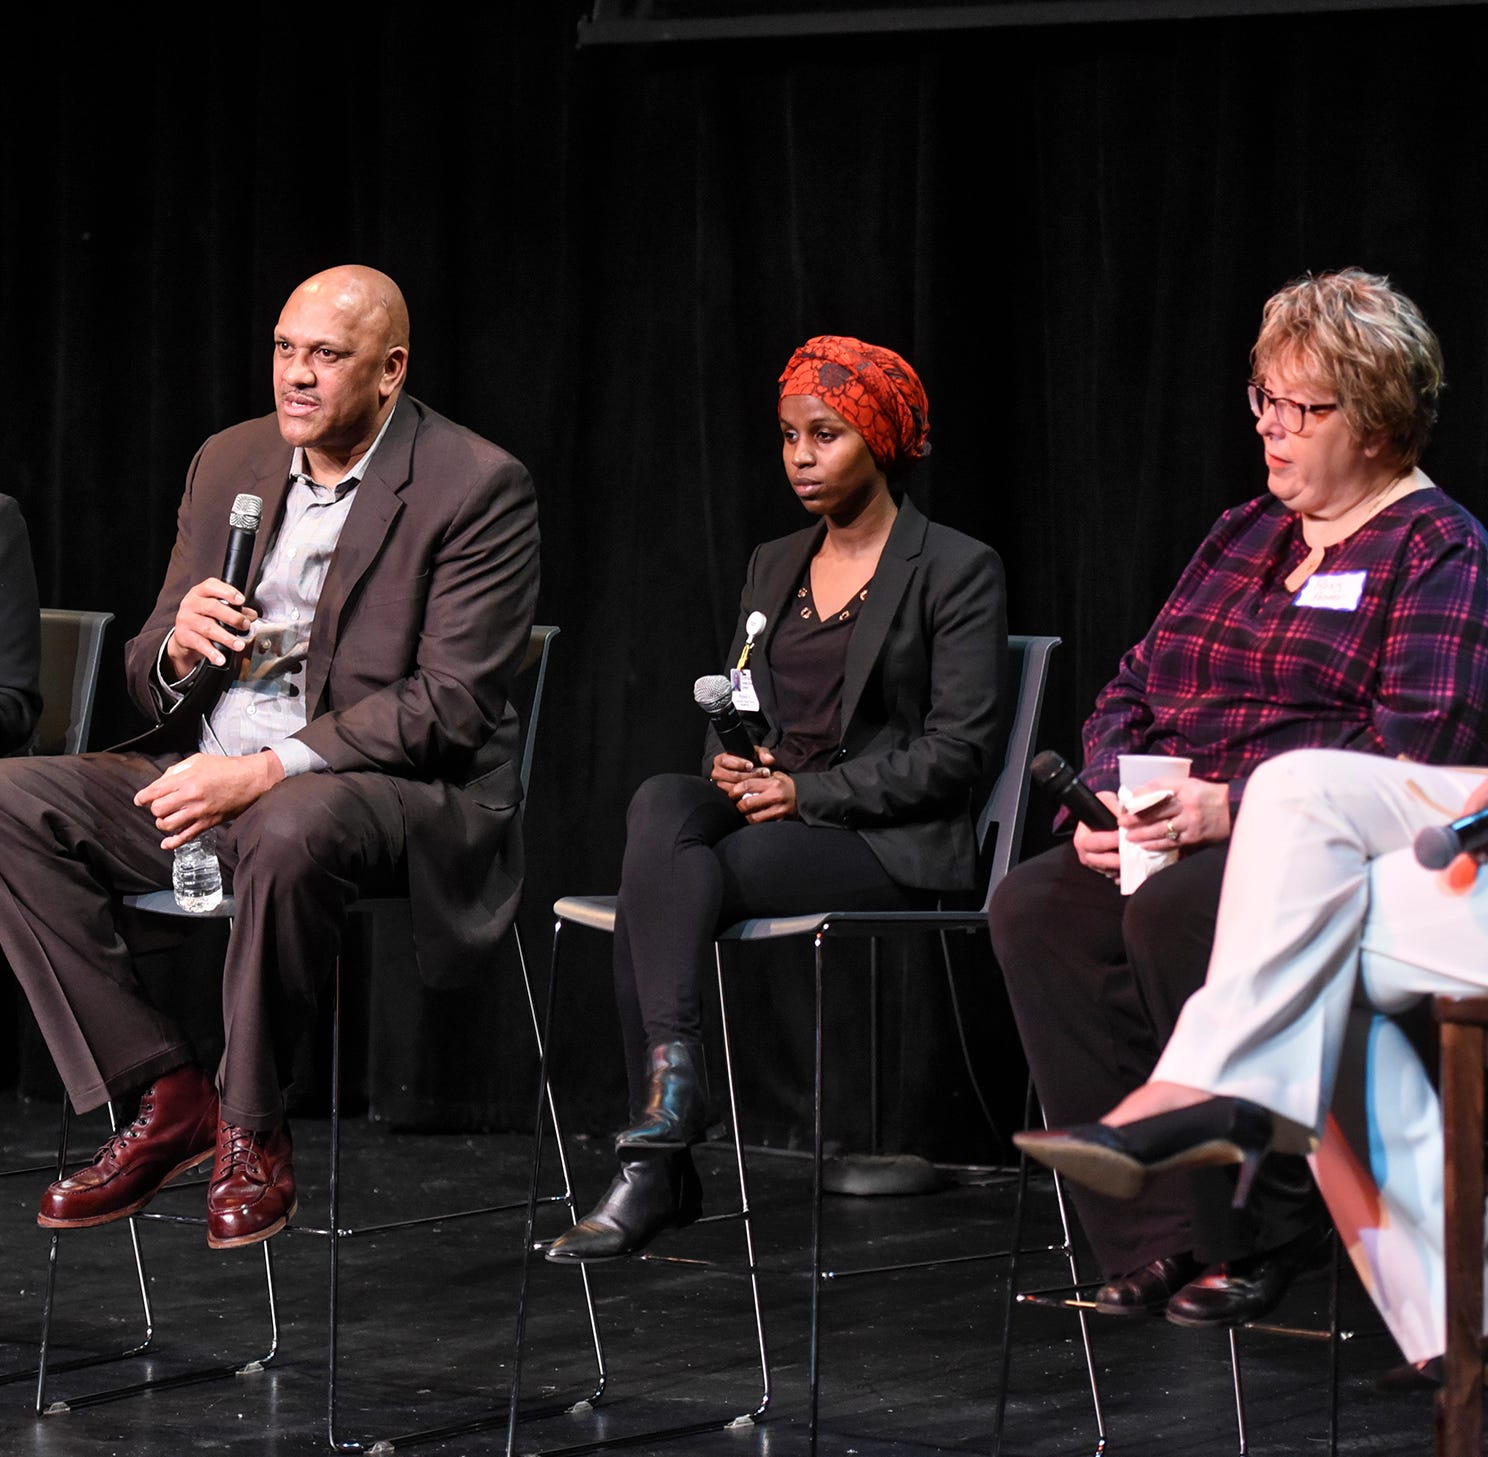 St. Cloud plays major role in TPT documentary about impact of childhood trauma